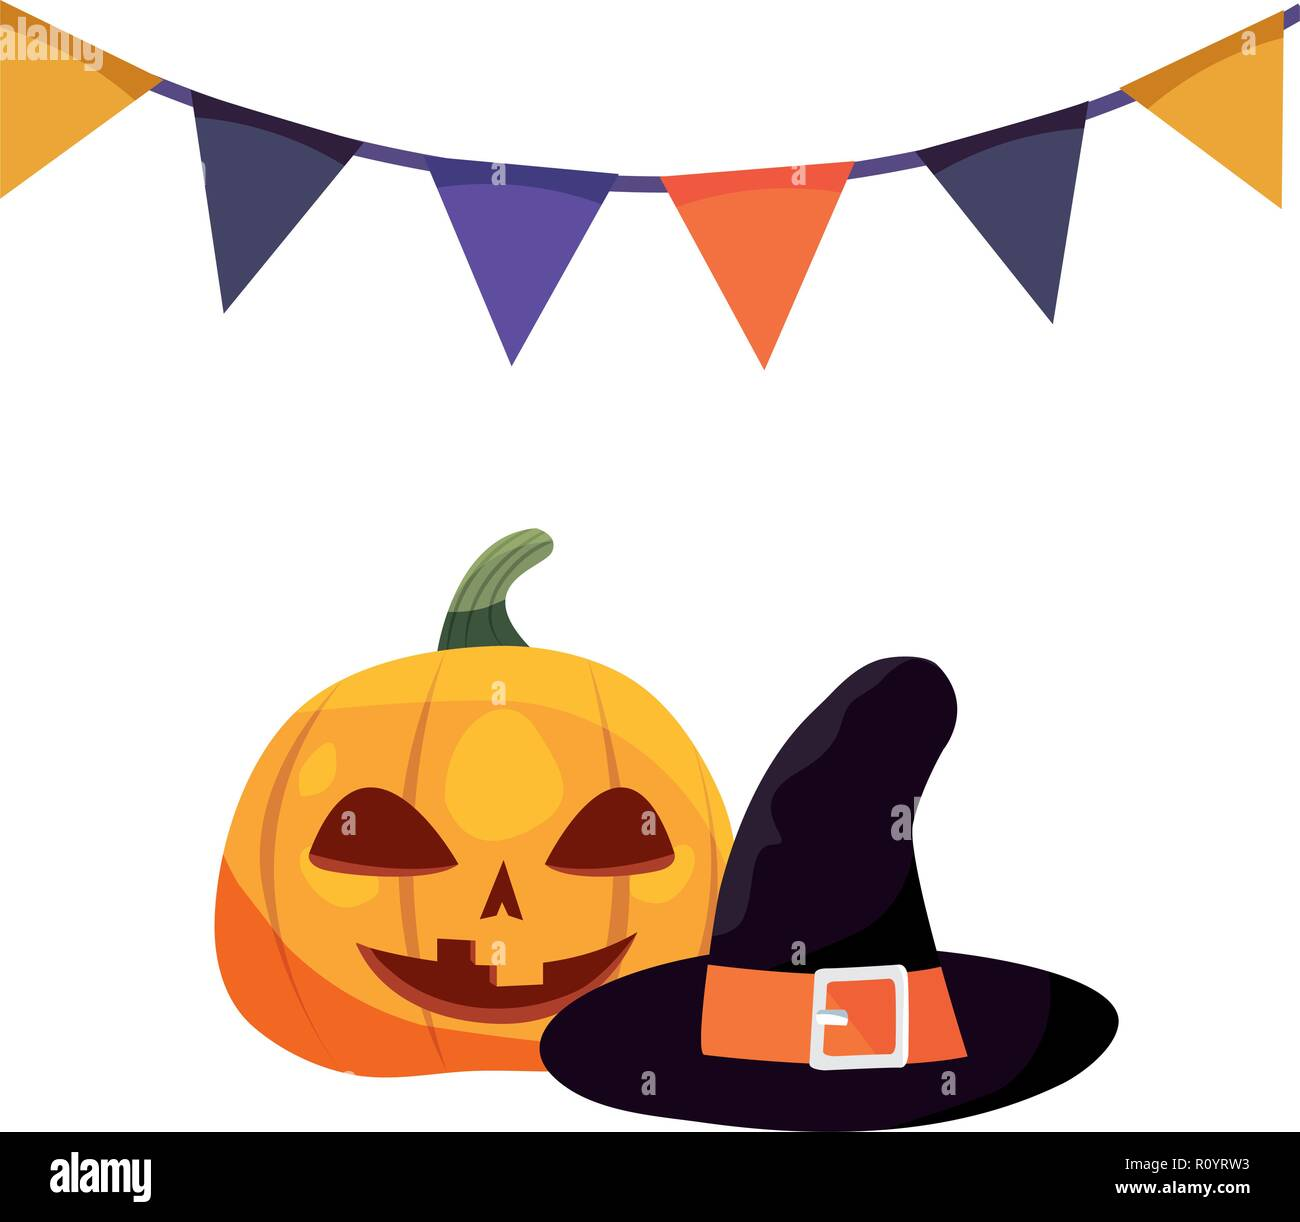 halloween pumpkins and hat costume vector illustration - Stock Vector